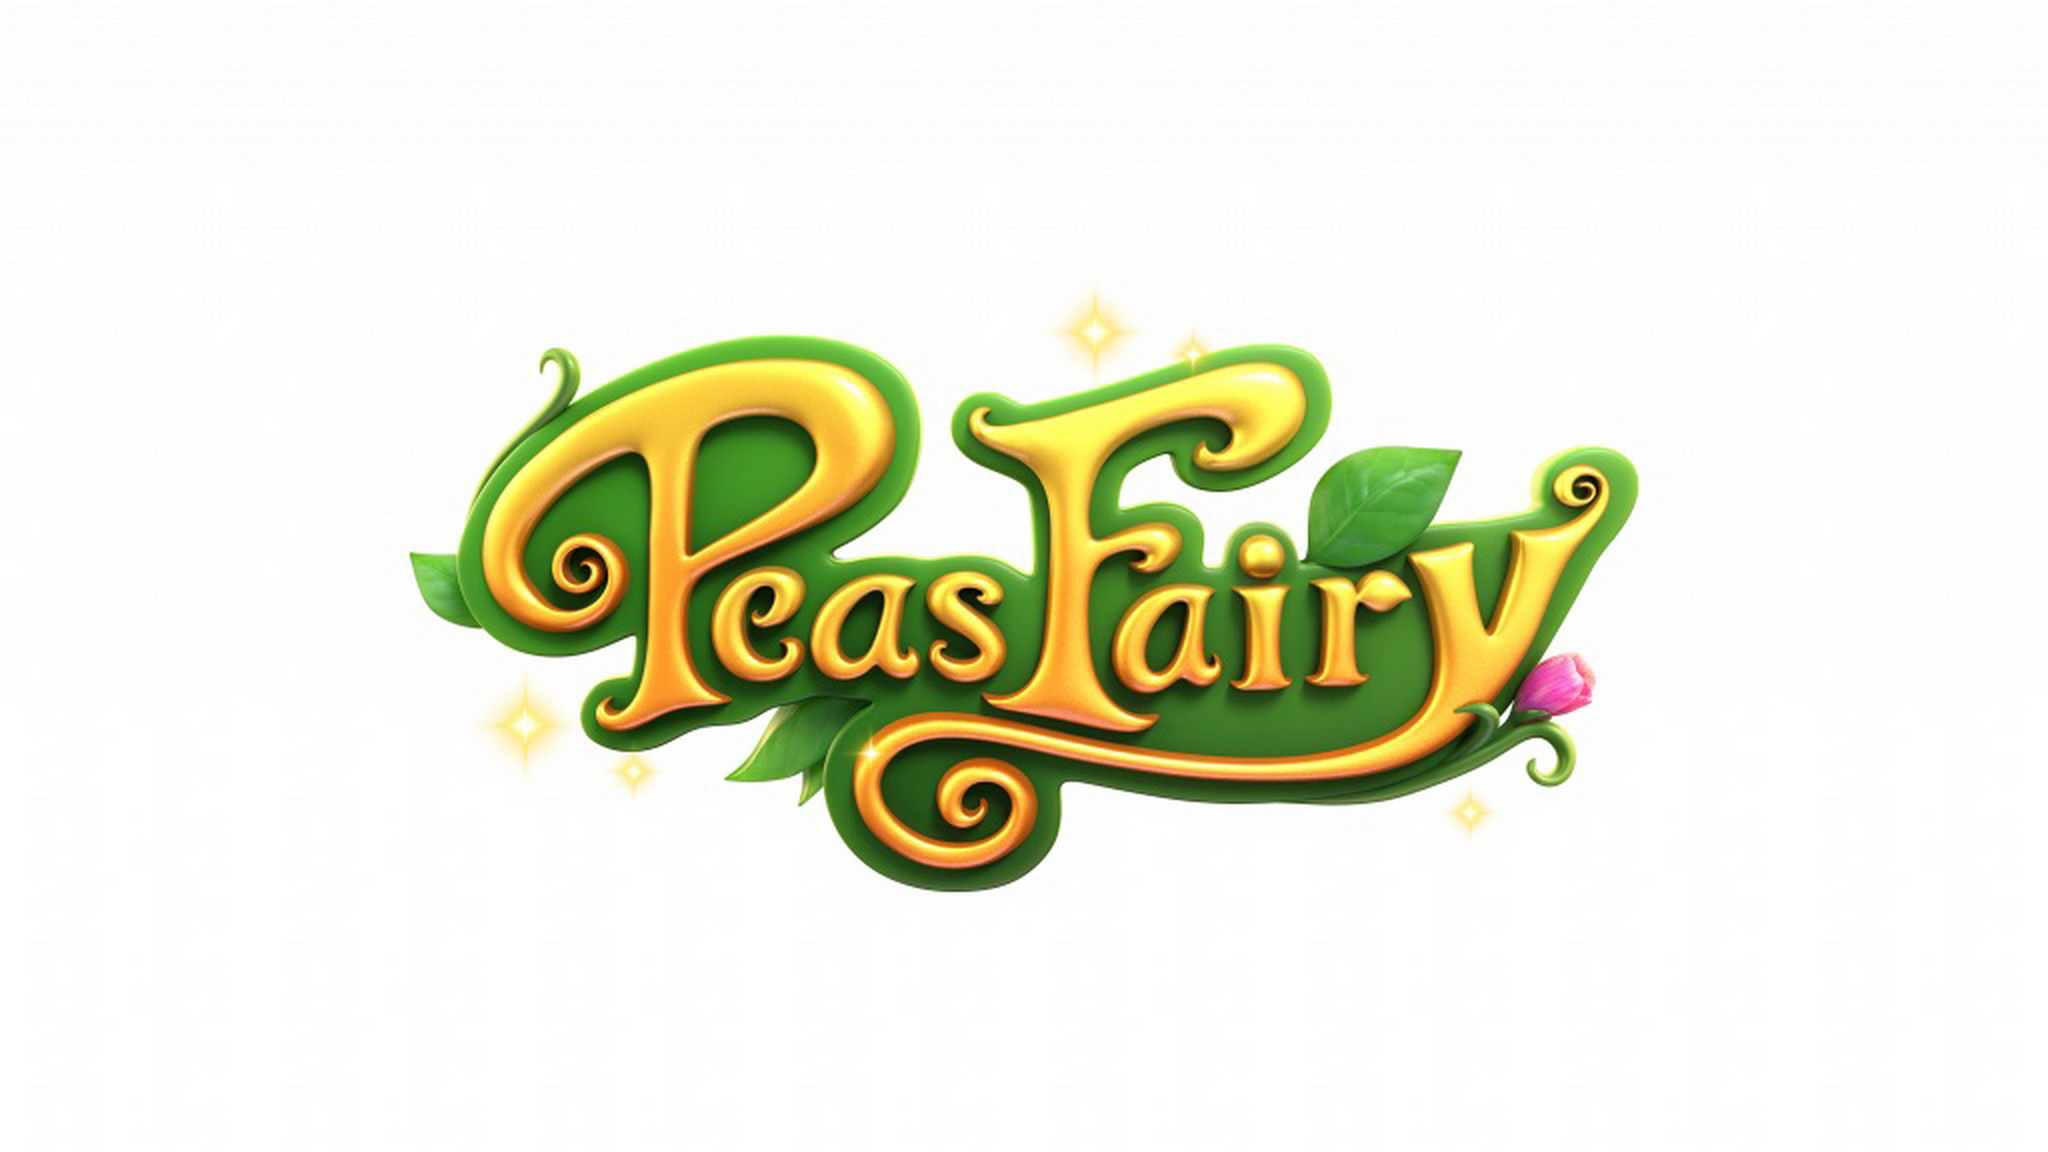 The Peas Fairy Online Slot Demo Game by PG Soft